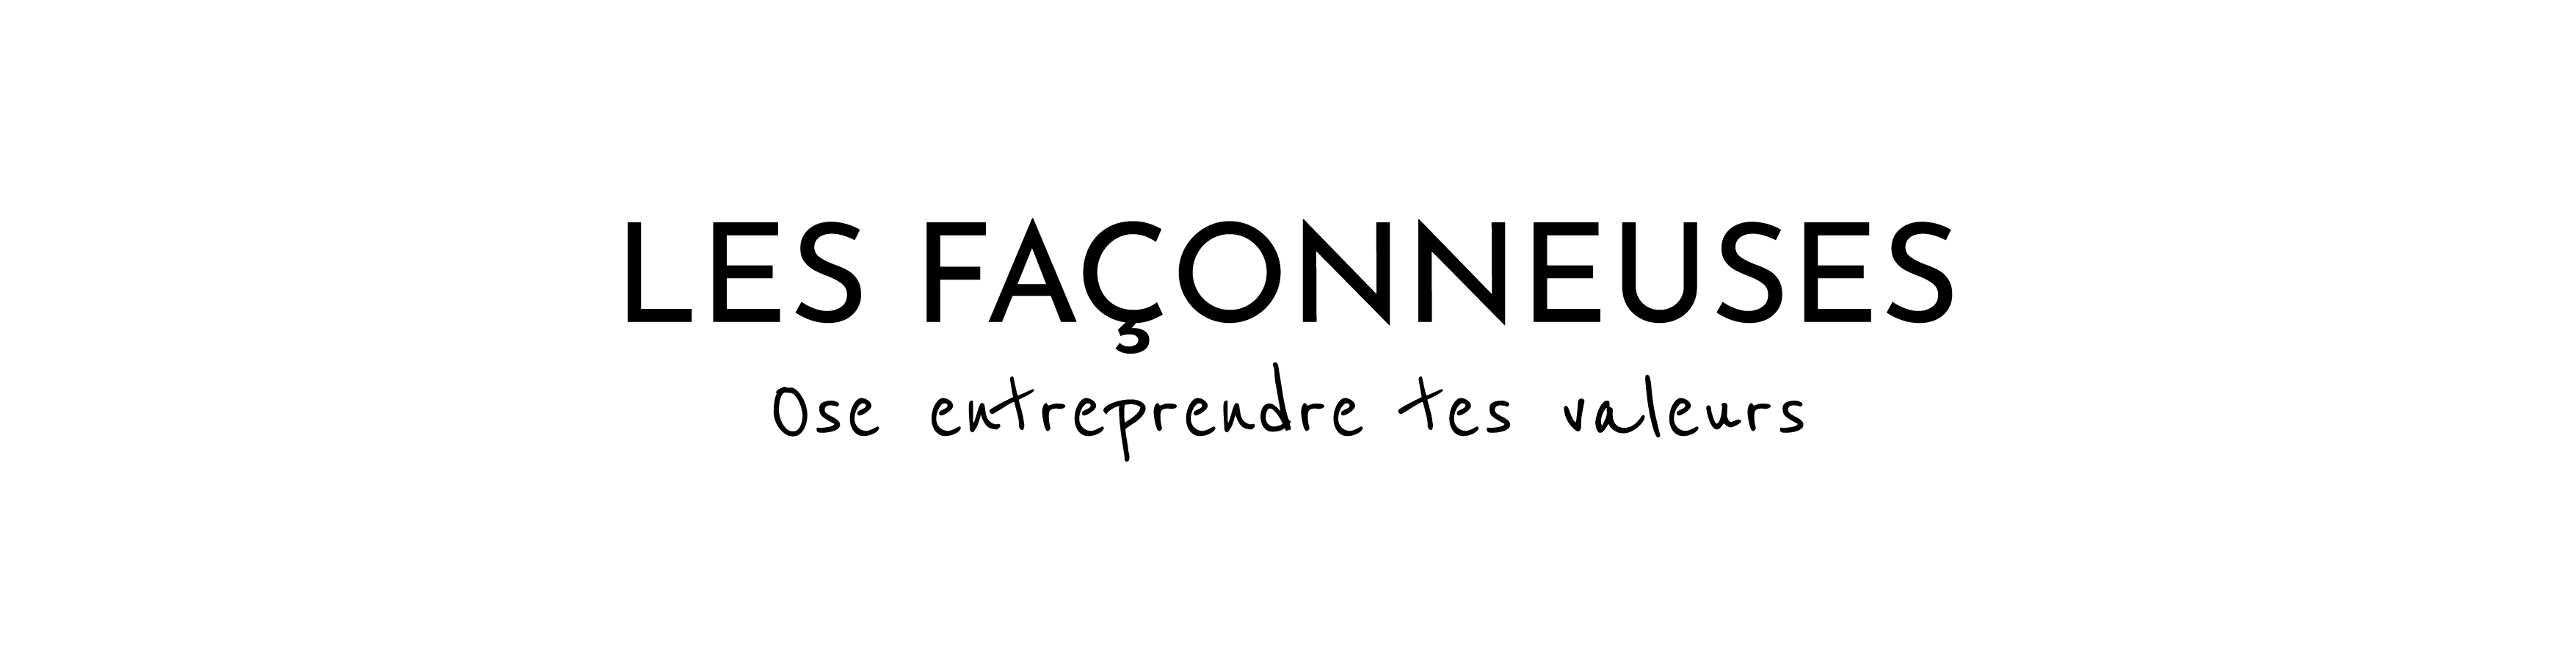 https://www.lesfaconneuses.fr/